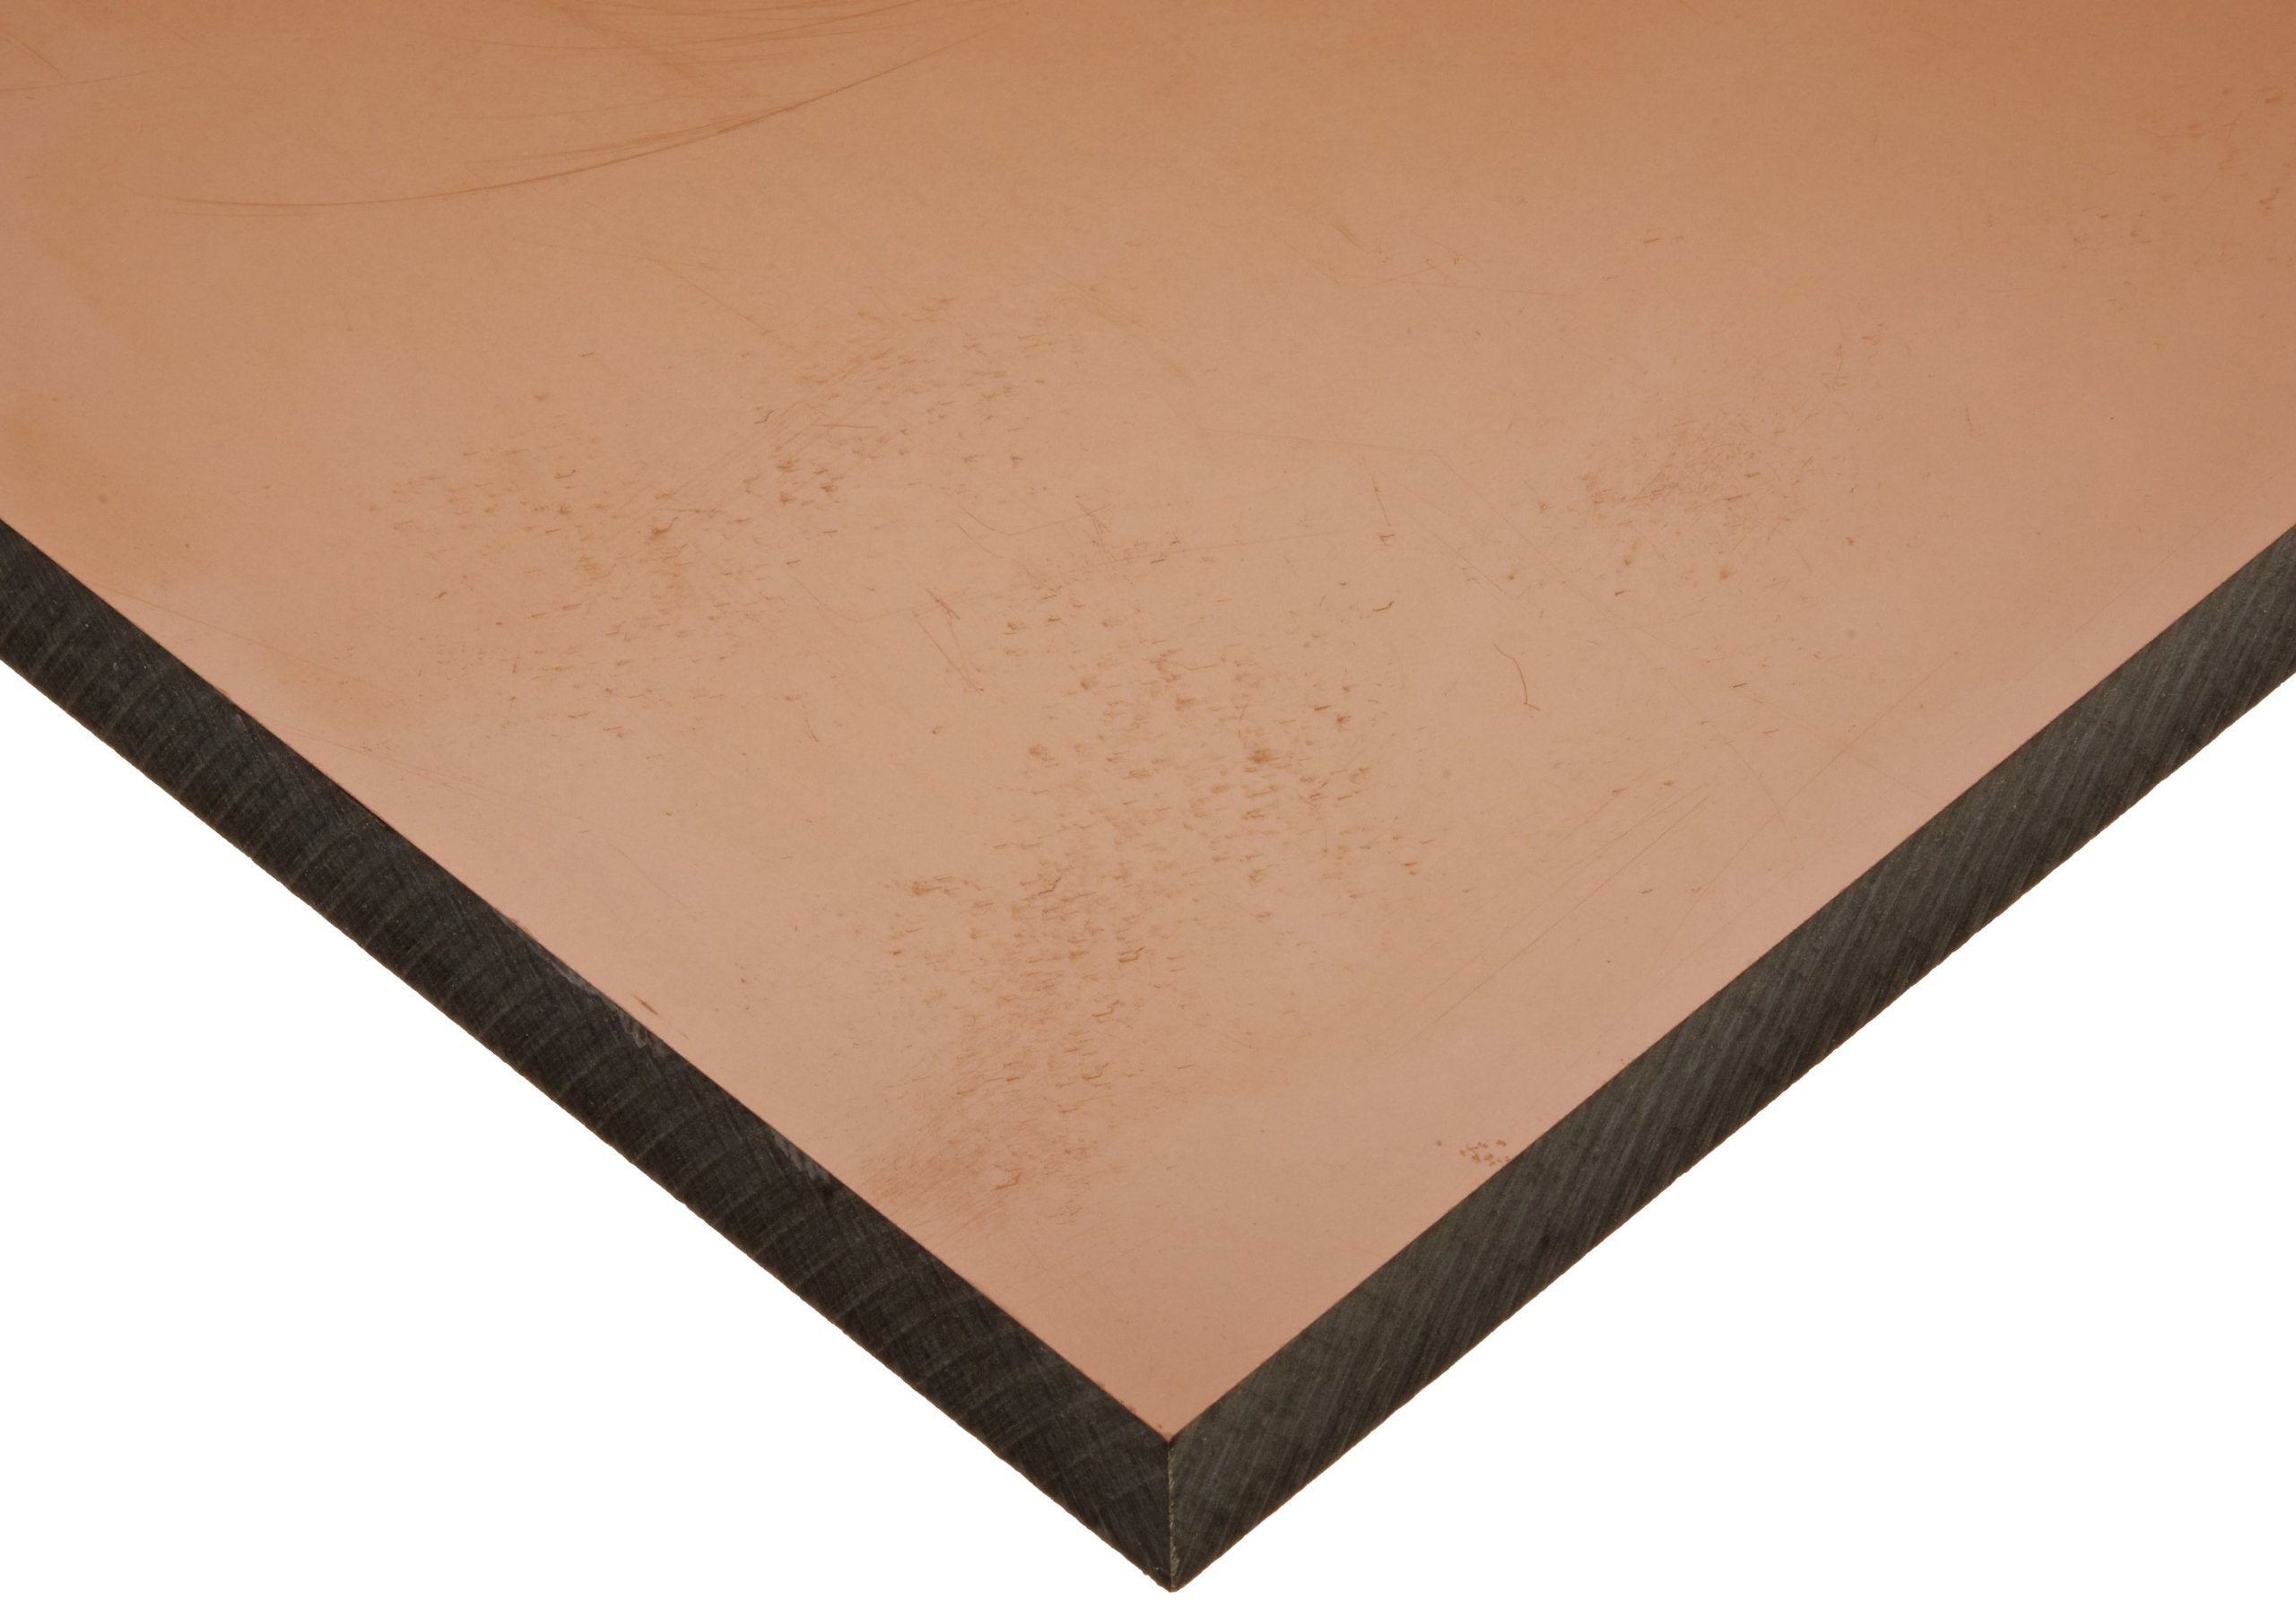 Phenolic Sheet, Tan, 0.5'' Thickness, 12'' Width, 24'' Length (Pack of 1) by Small Parts